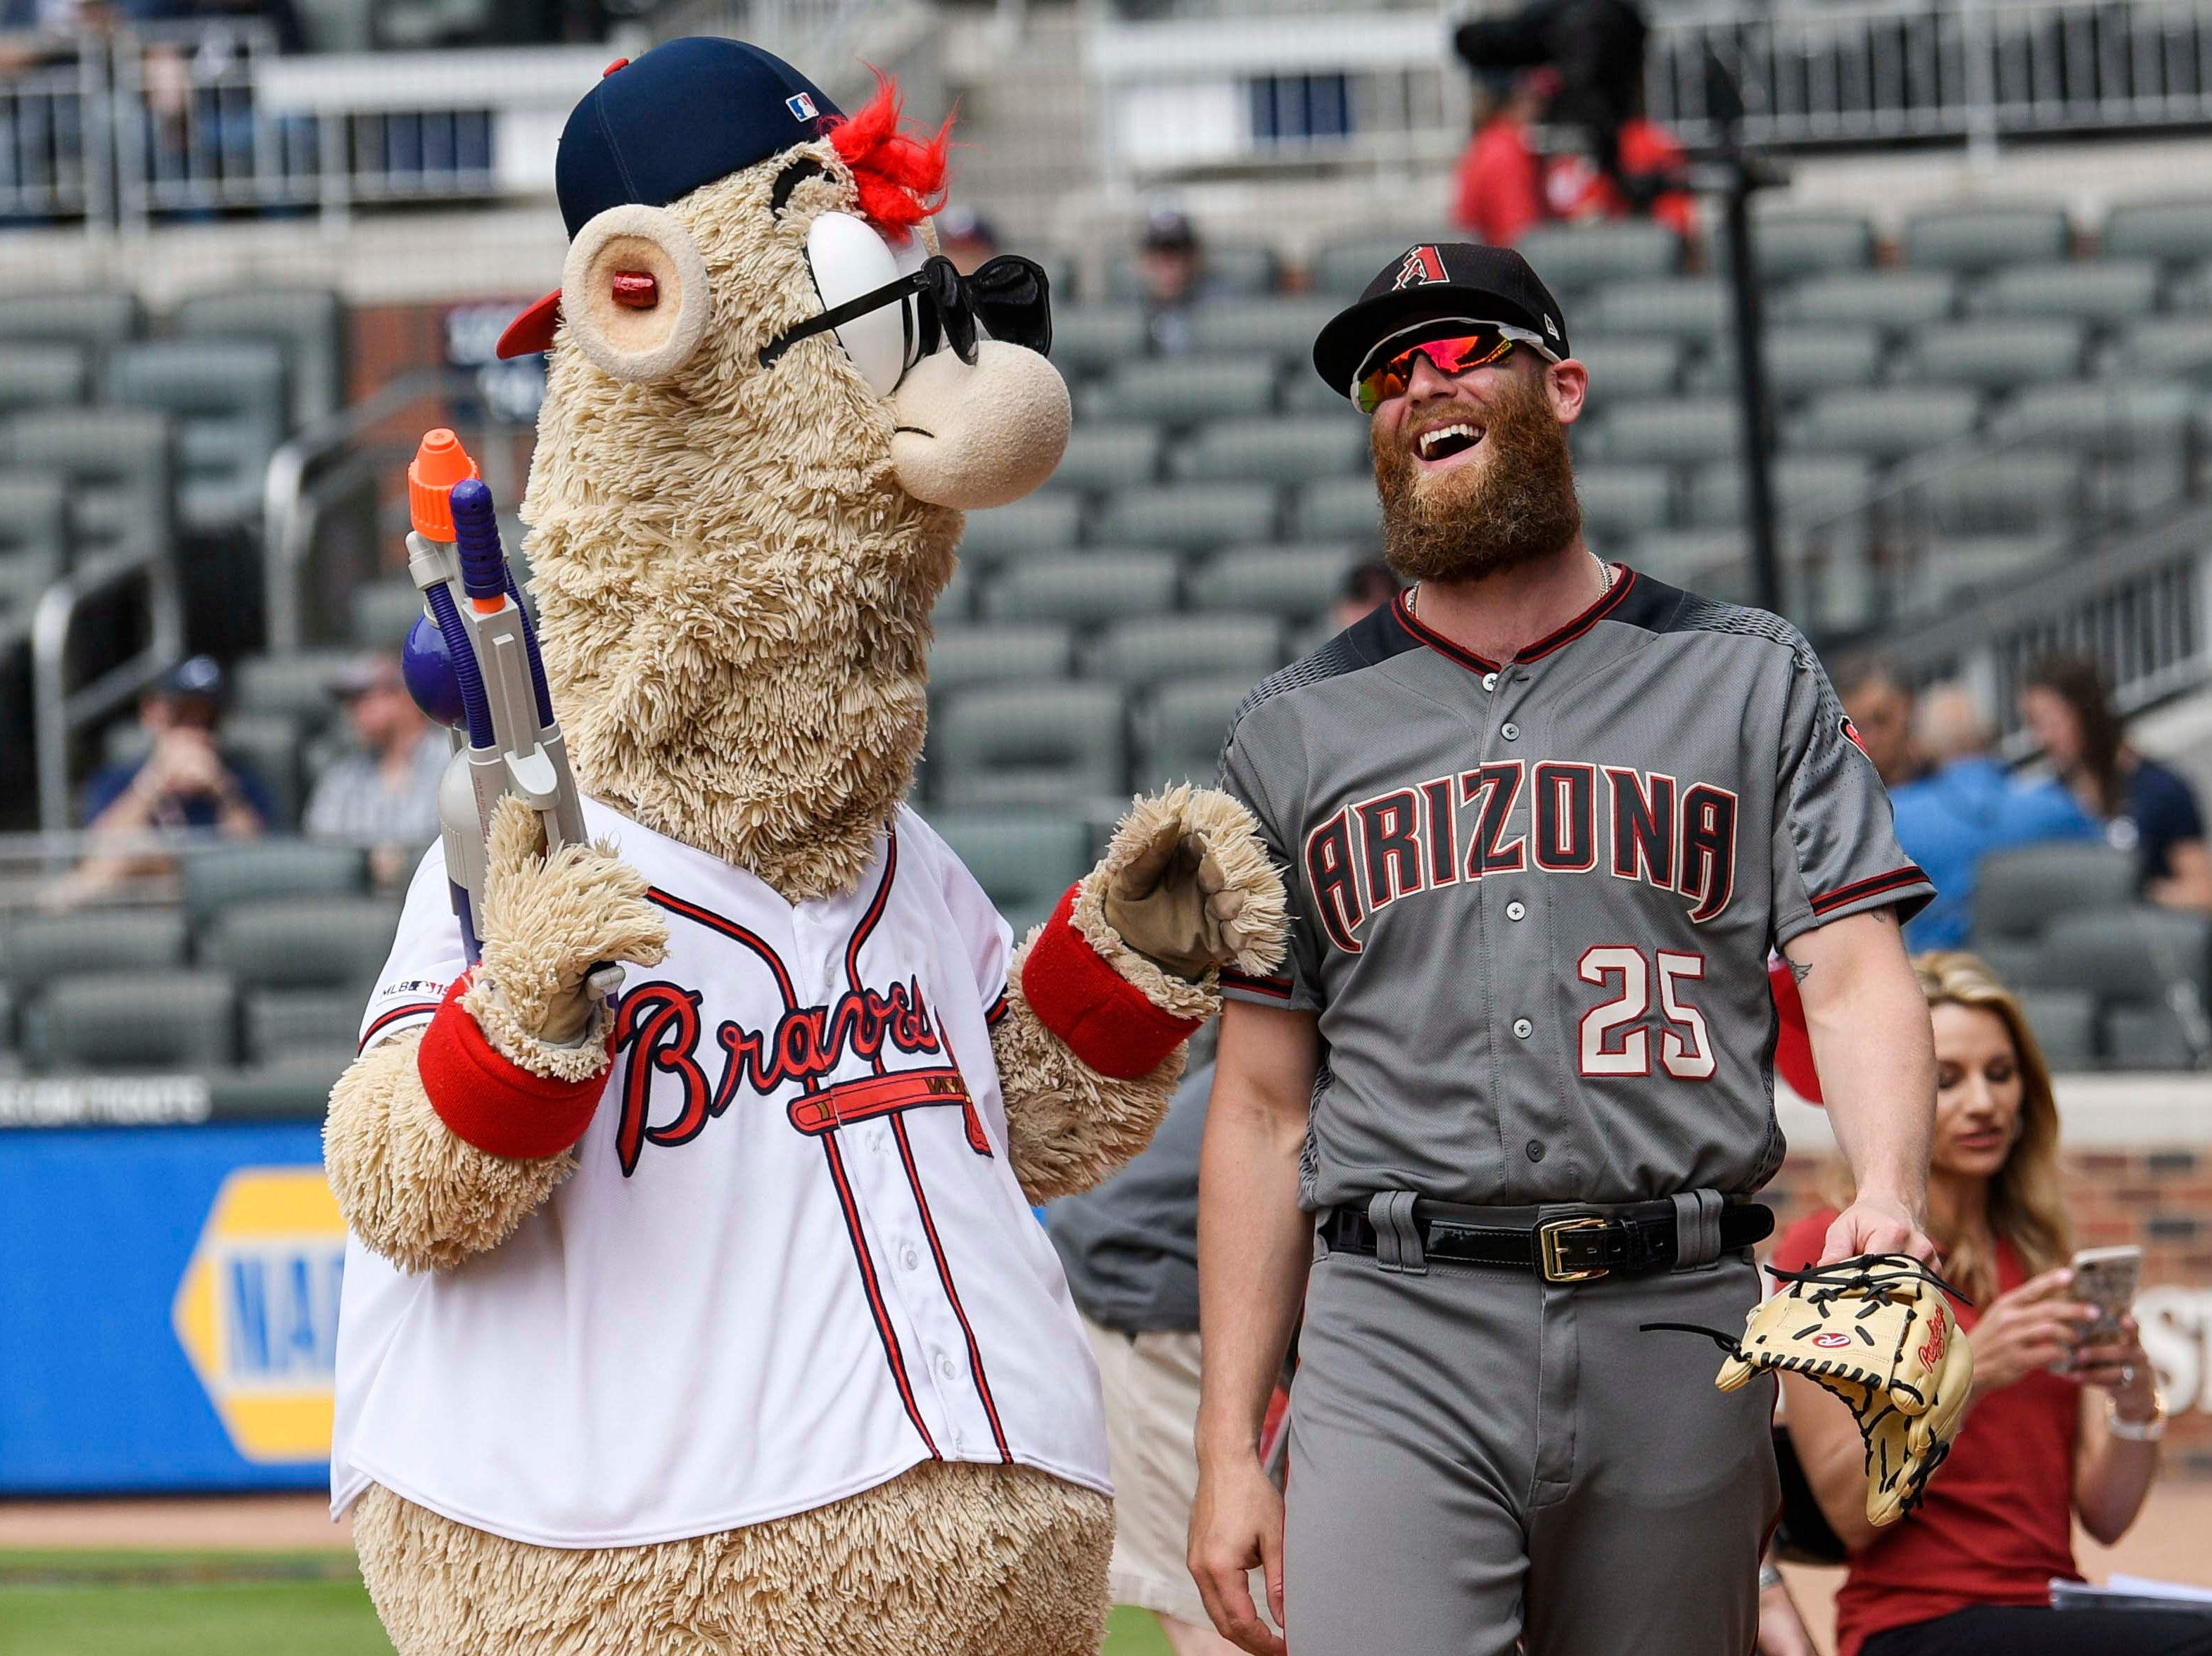 Apr 18, 2019; Atlanta, GA, USA; Atlanta Braves mascot Blooper and Arizona Diamondbacks relief pitcher Archie Bradley (25) interact on the field prior to the game at SunTrust Park. Mandatory Credit: Dale Zanine-USA TODAY Sports